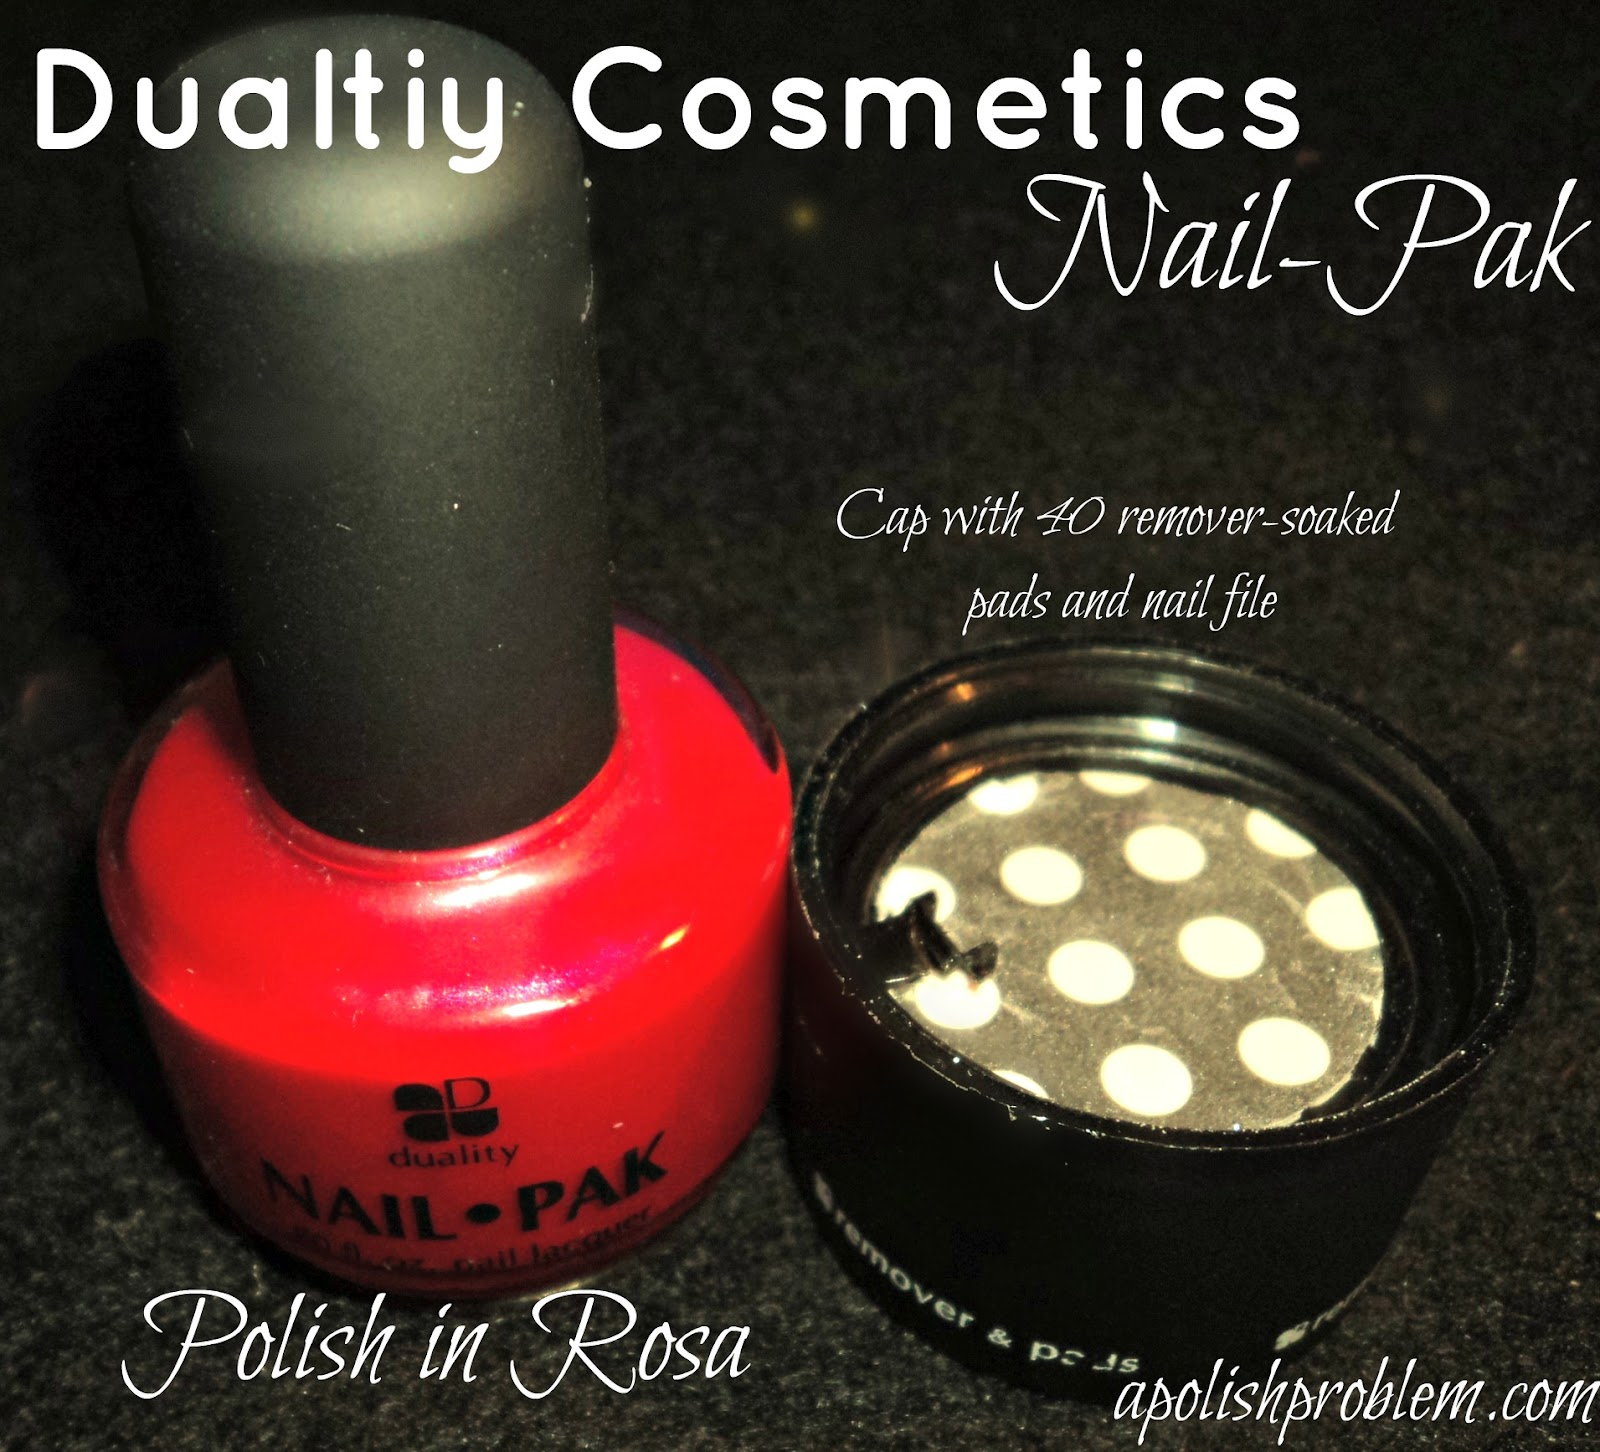 A Polish Problem: Duality Cosmetics Nail-Pak Product Review